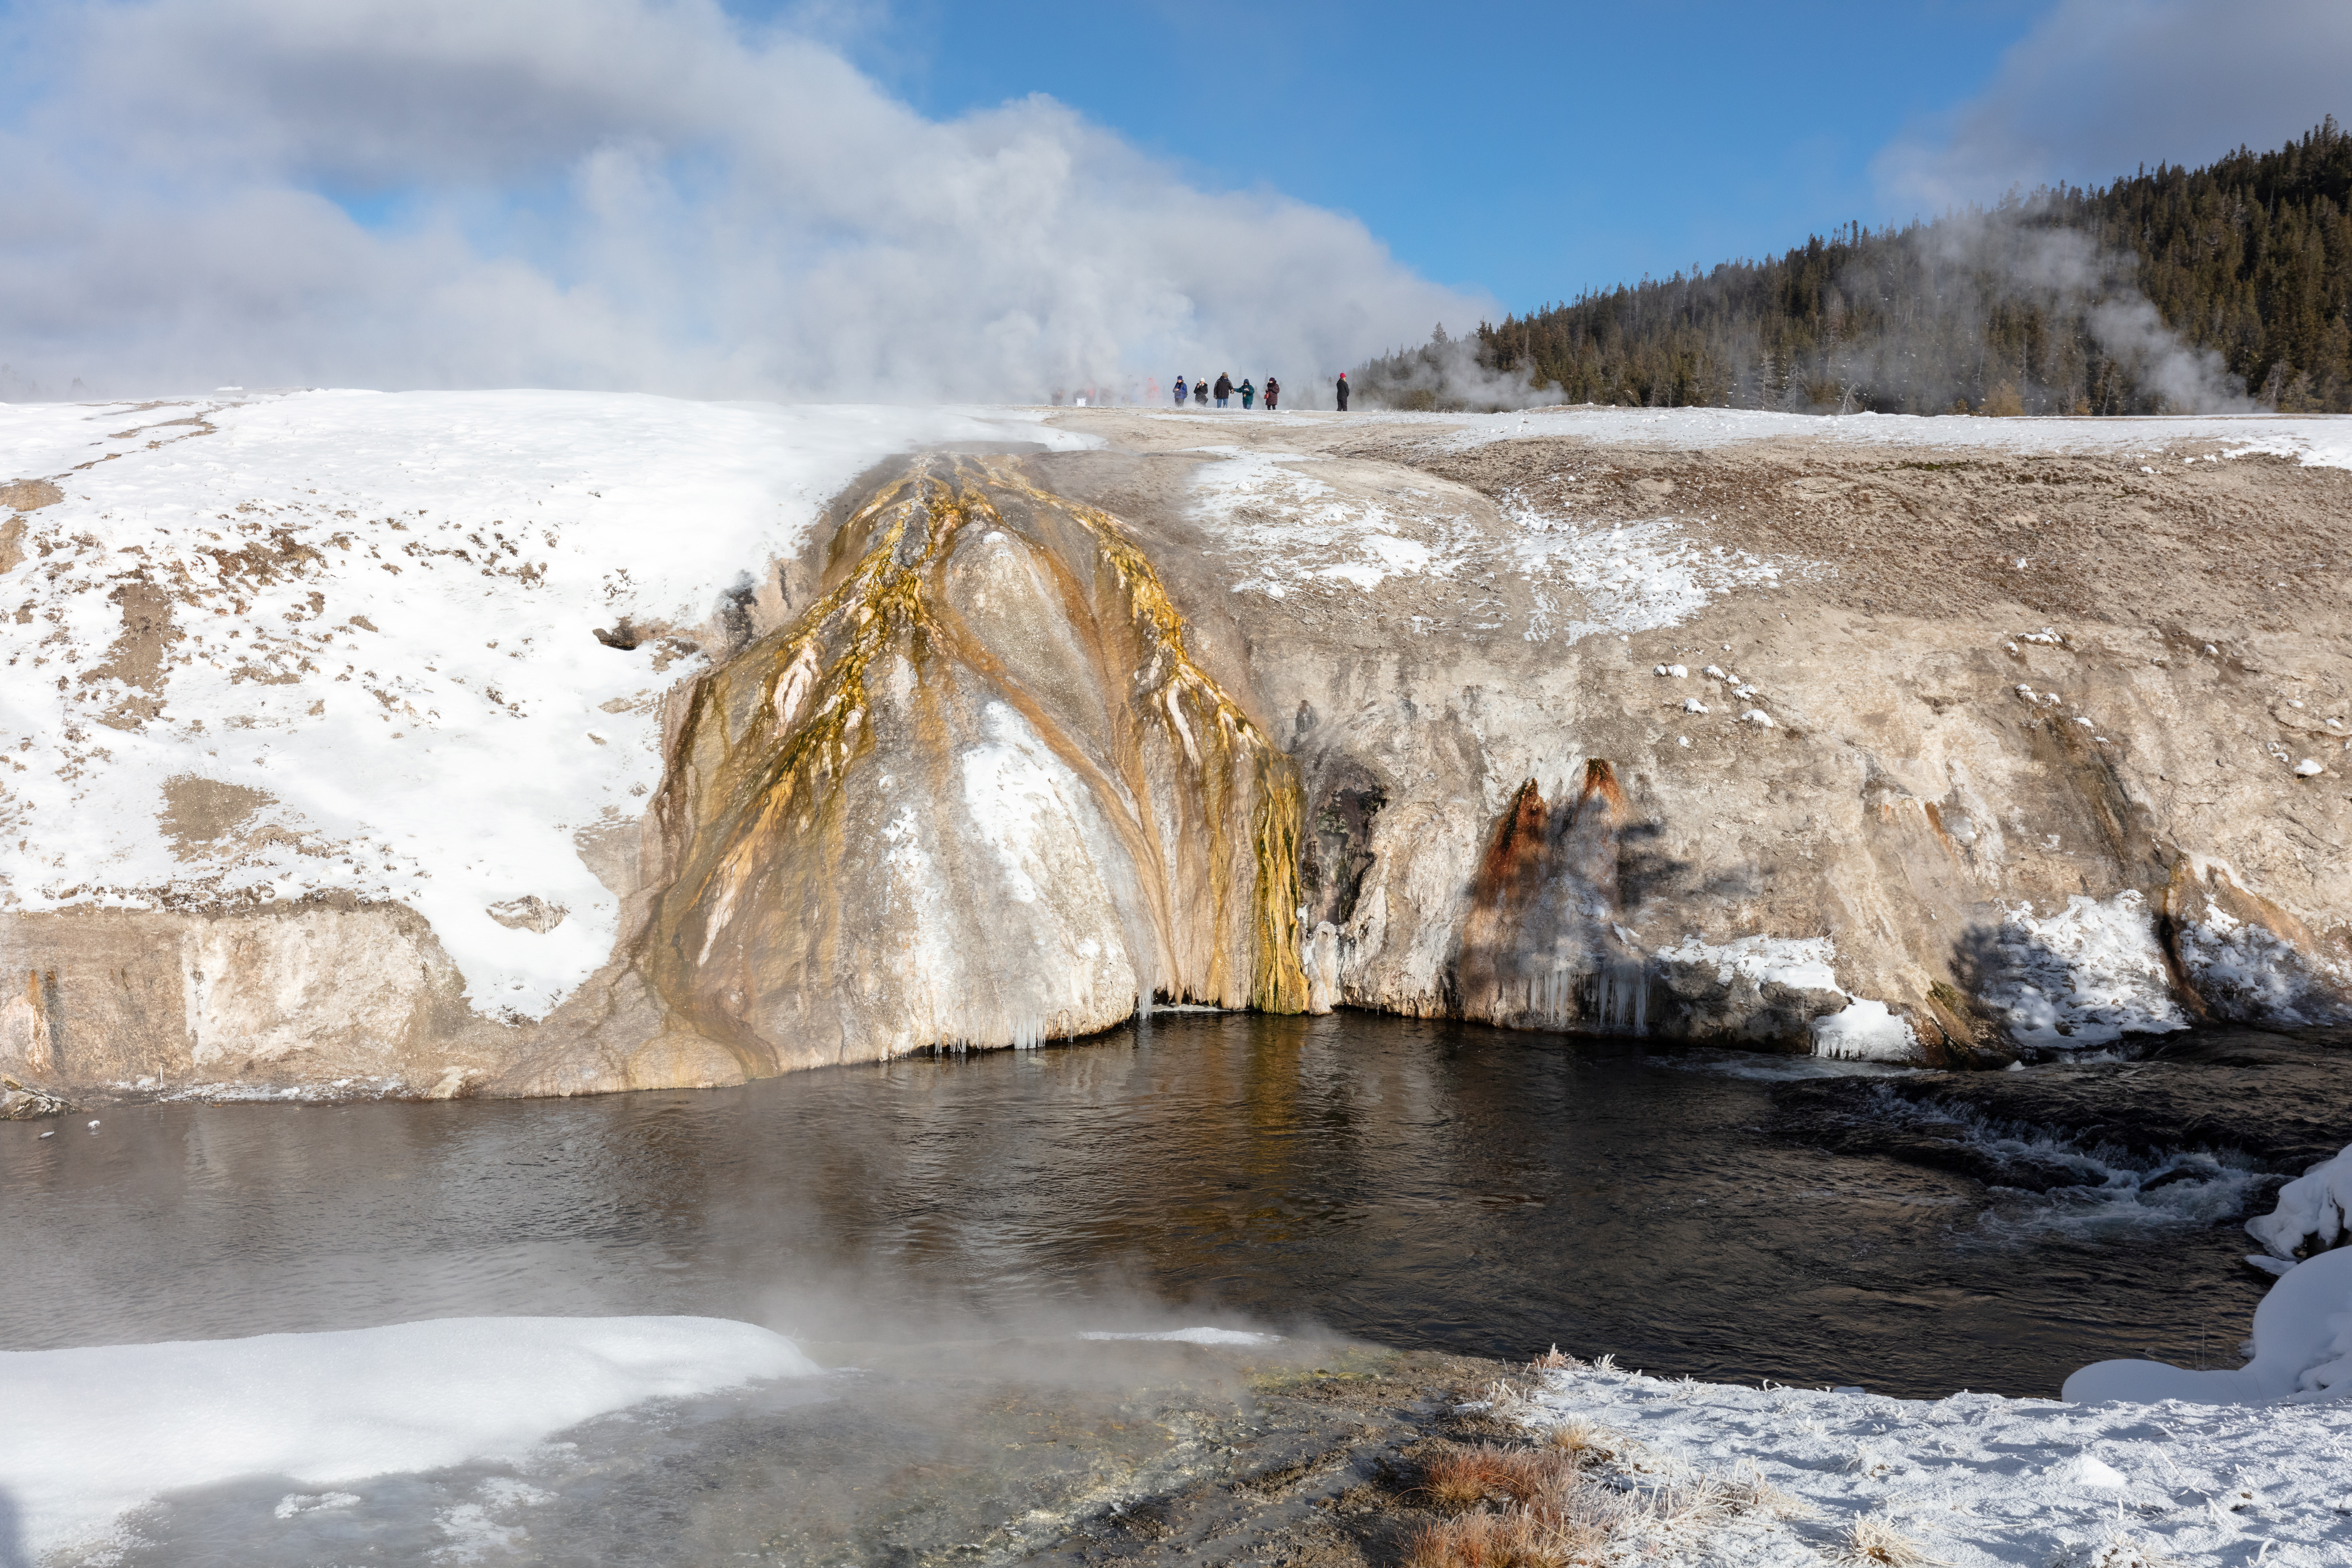 A tour group is seen on Geyser Hill Boardwalks at Yellowstone National Park in Wyoming, U.S., January 28, 2019.